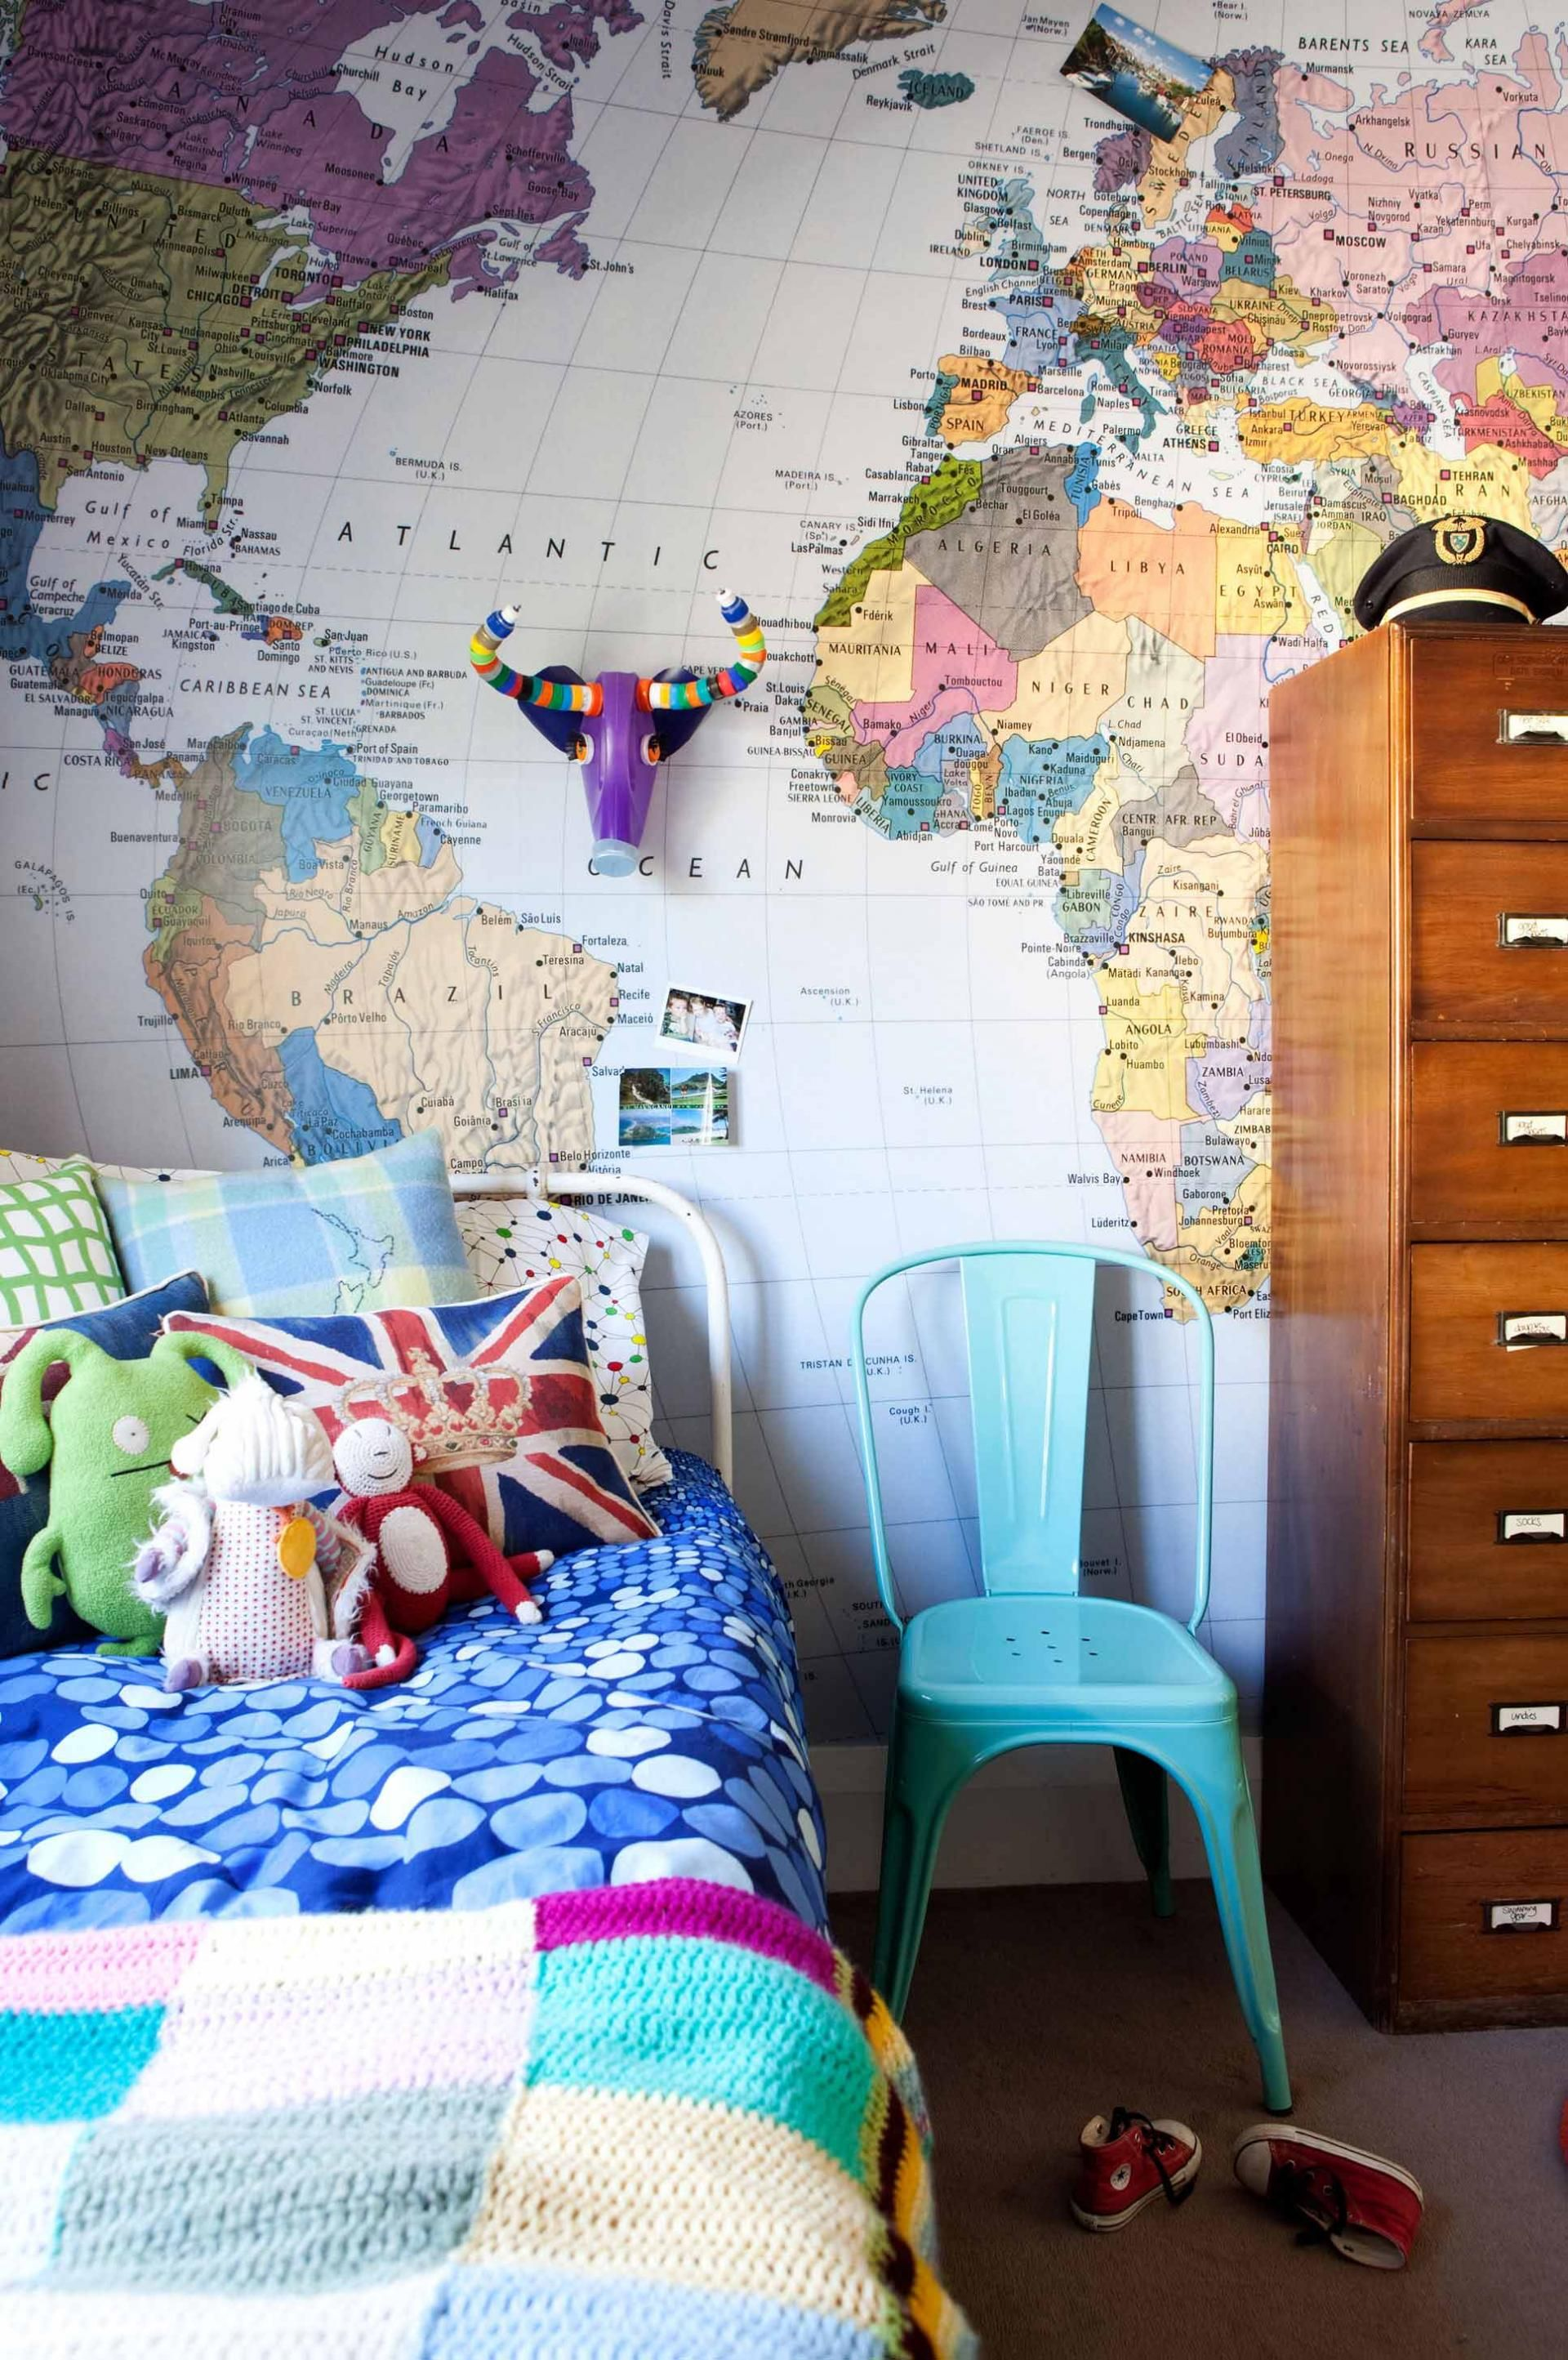 Colourful kids bedroom world map wallpaper apr15 for the home colourful kids bedroom world map wallpaper apr15 publicscrutiny Gallery